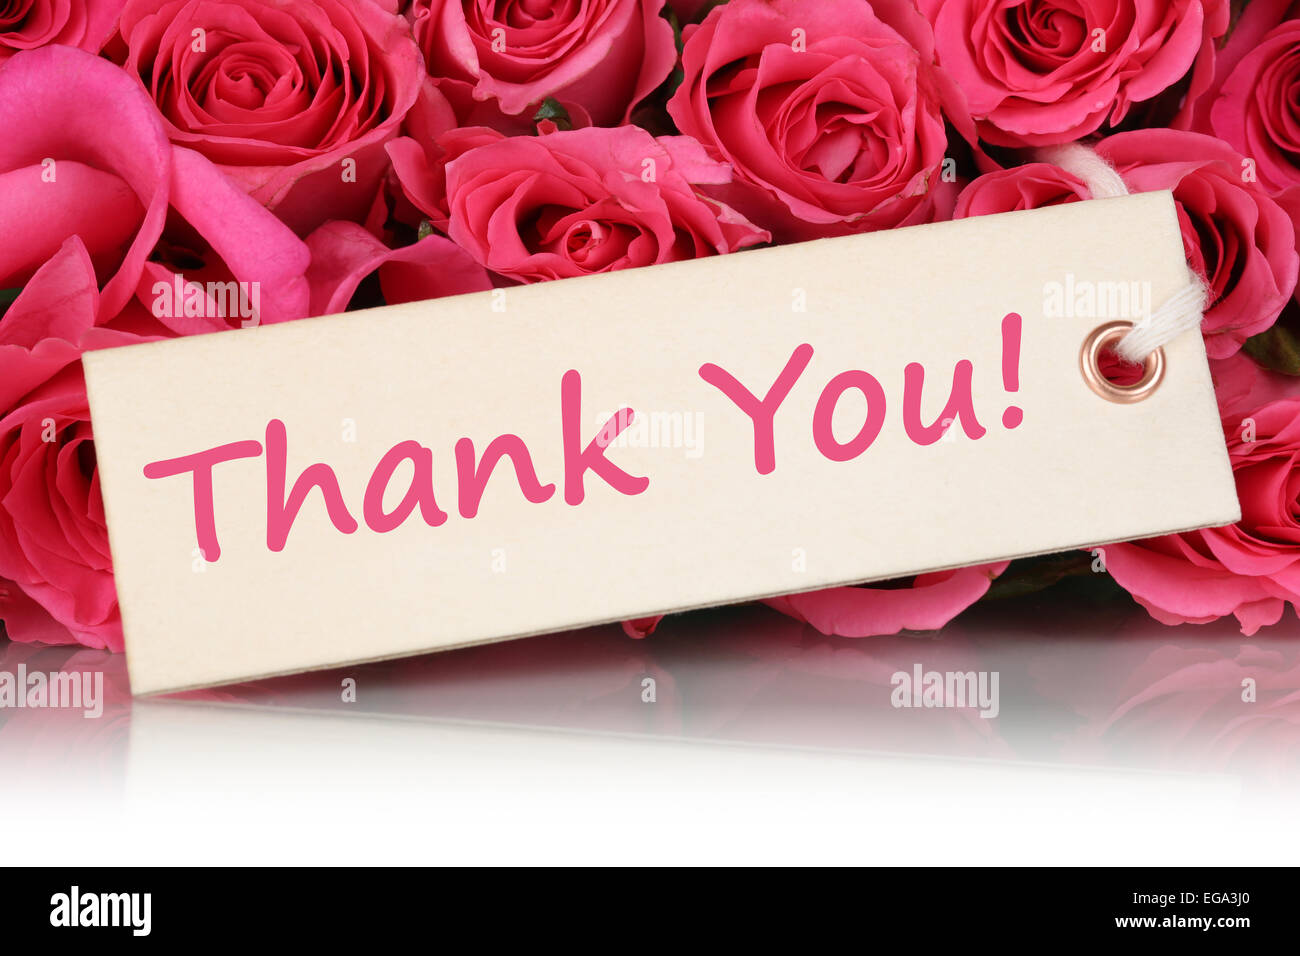 The words thank you on a greeting card with roses flowers on the words thank you on a greeting card with roses flowers on mothers or valentines day m4hsunfo